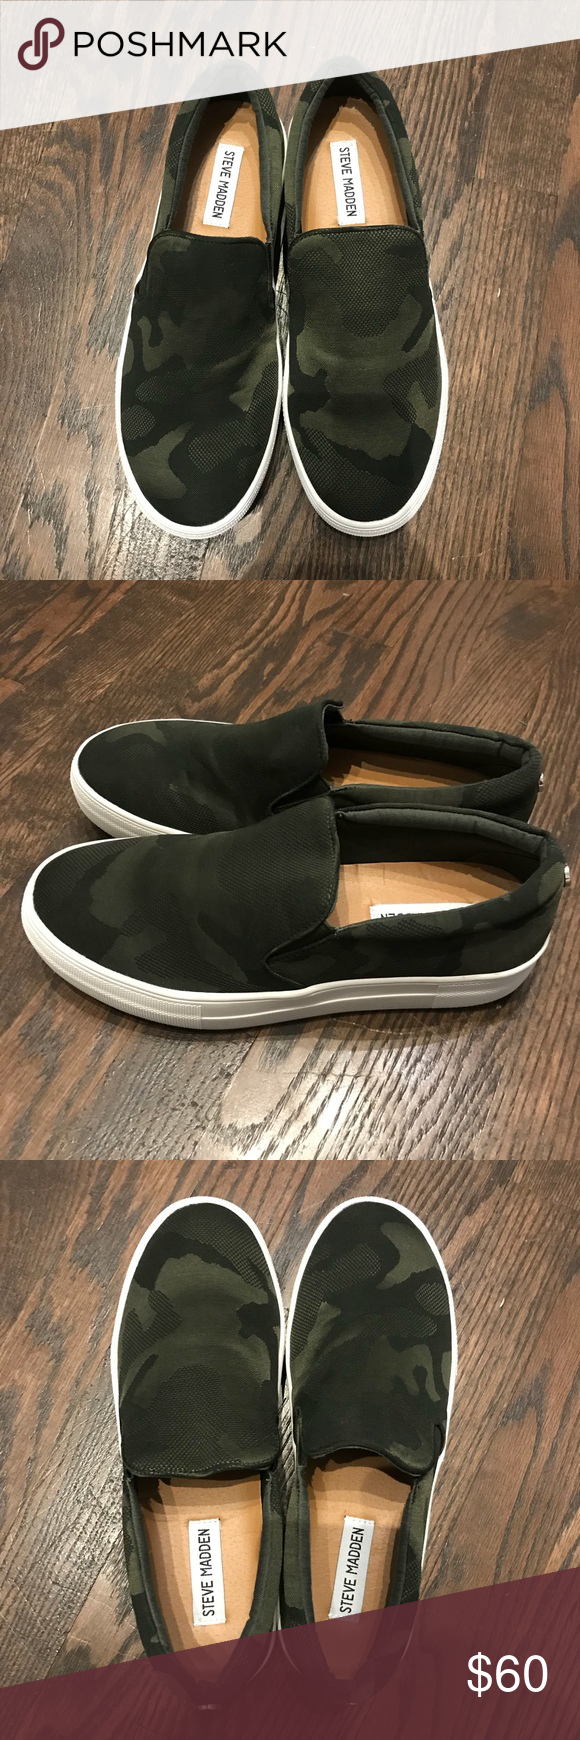 781cb6958ee New Steve Madden Platform Gills Green Camo Nylon 8 New without box Steve  Madden Platform Gills in Green Camo. These shoes are adorable and perfect  with ...